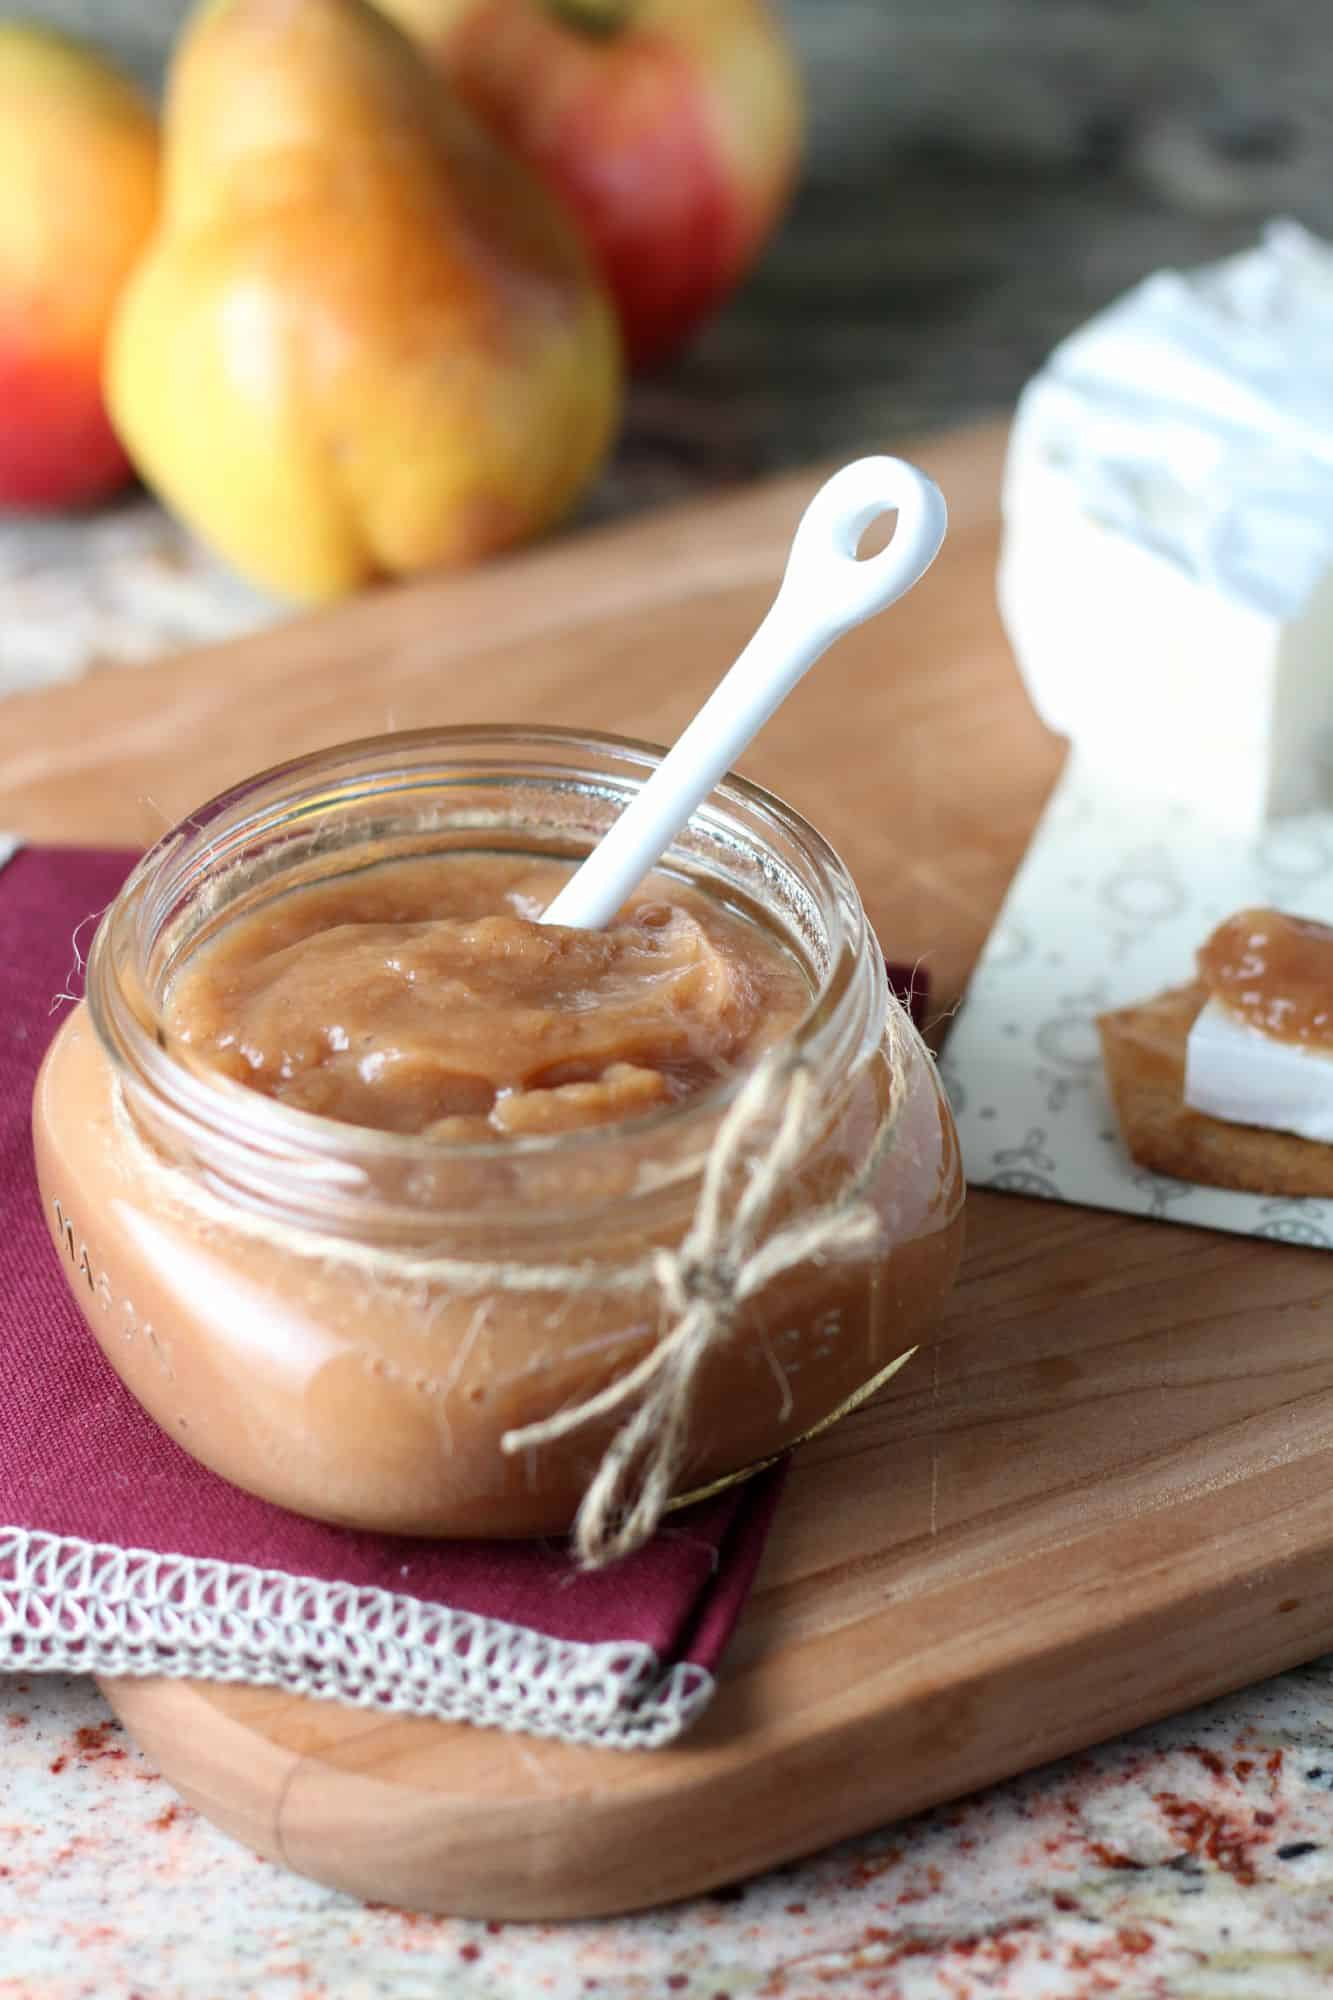 Spiced Apple-Pear Butter and a #WholeFoods #Giveaway | A ...